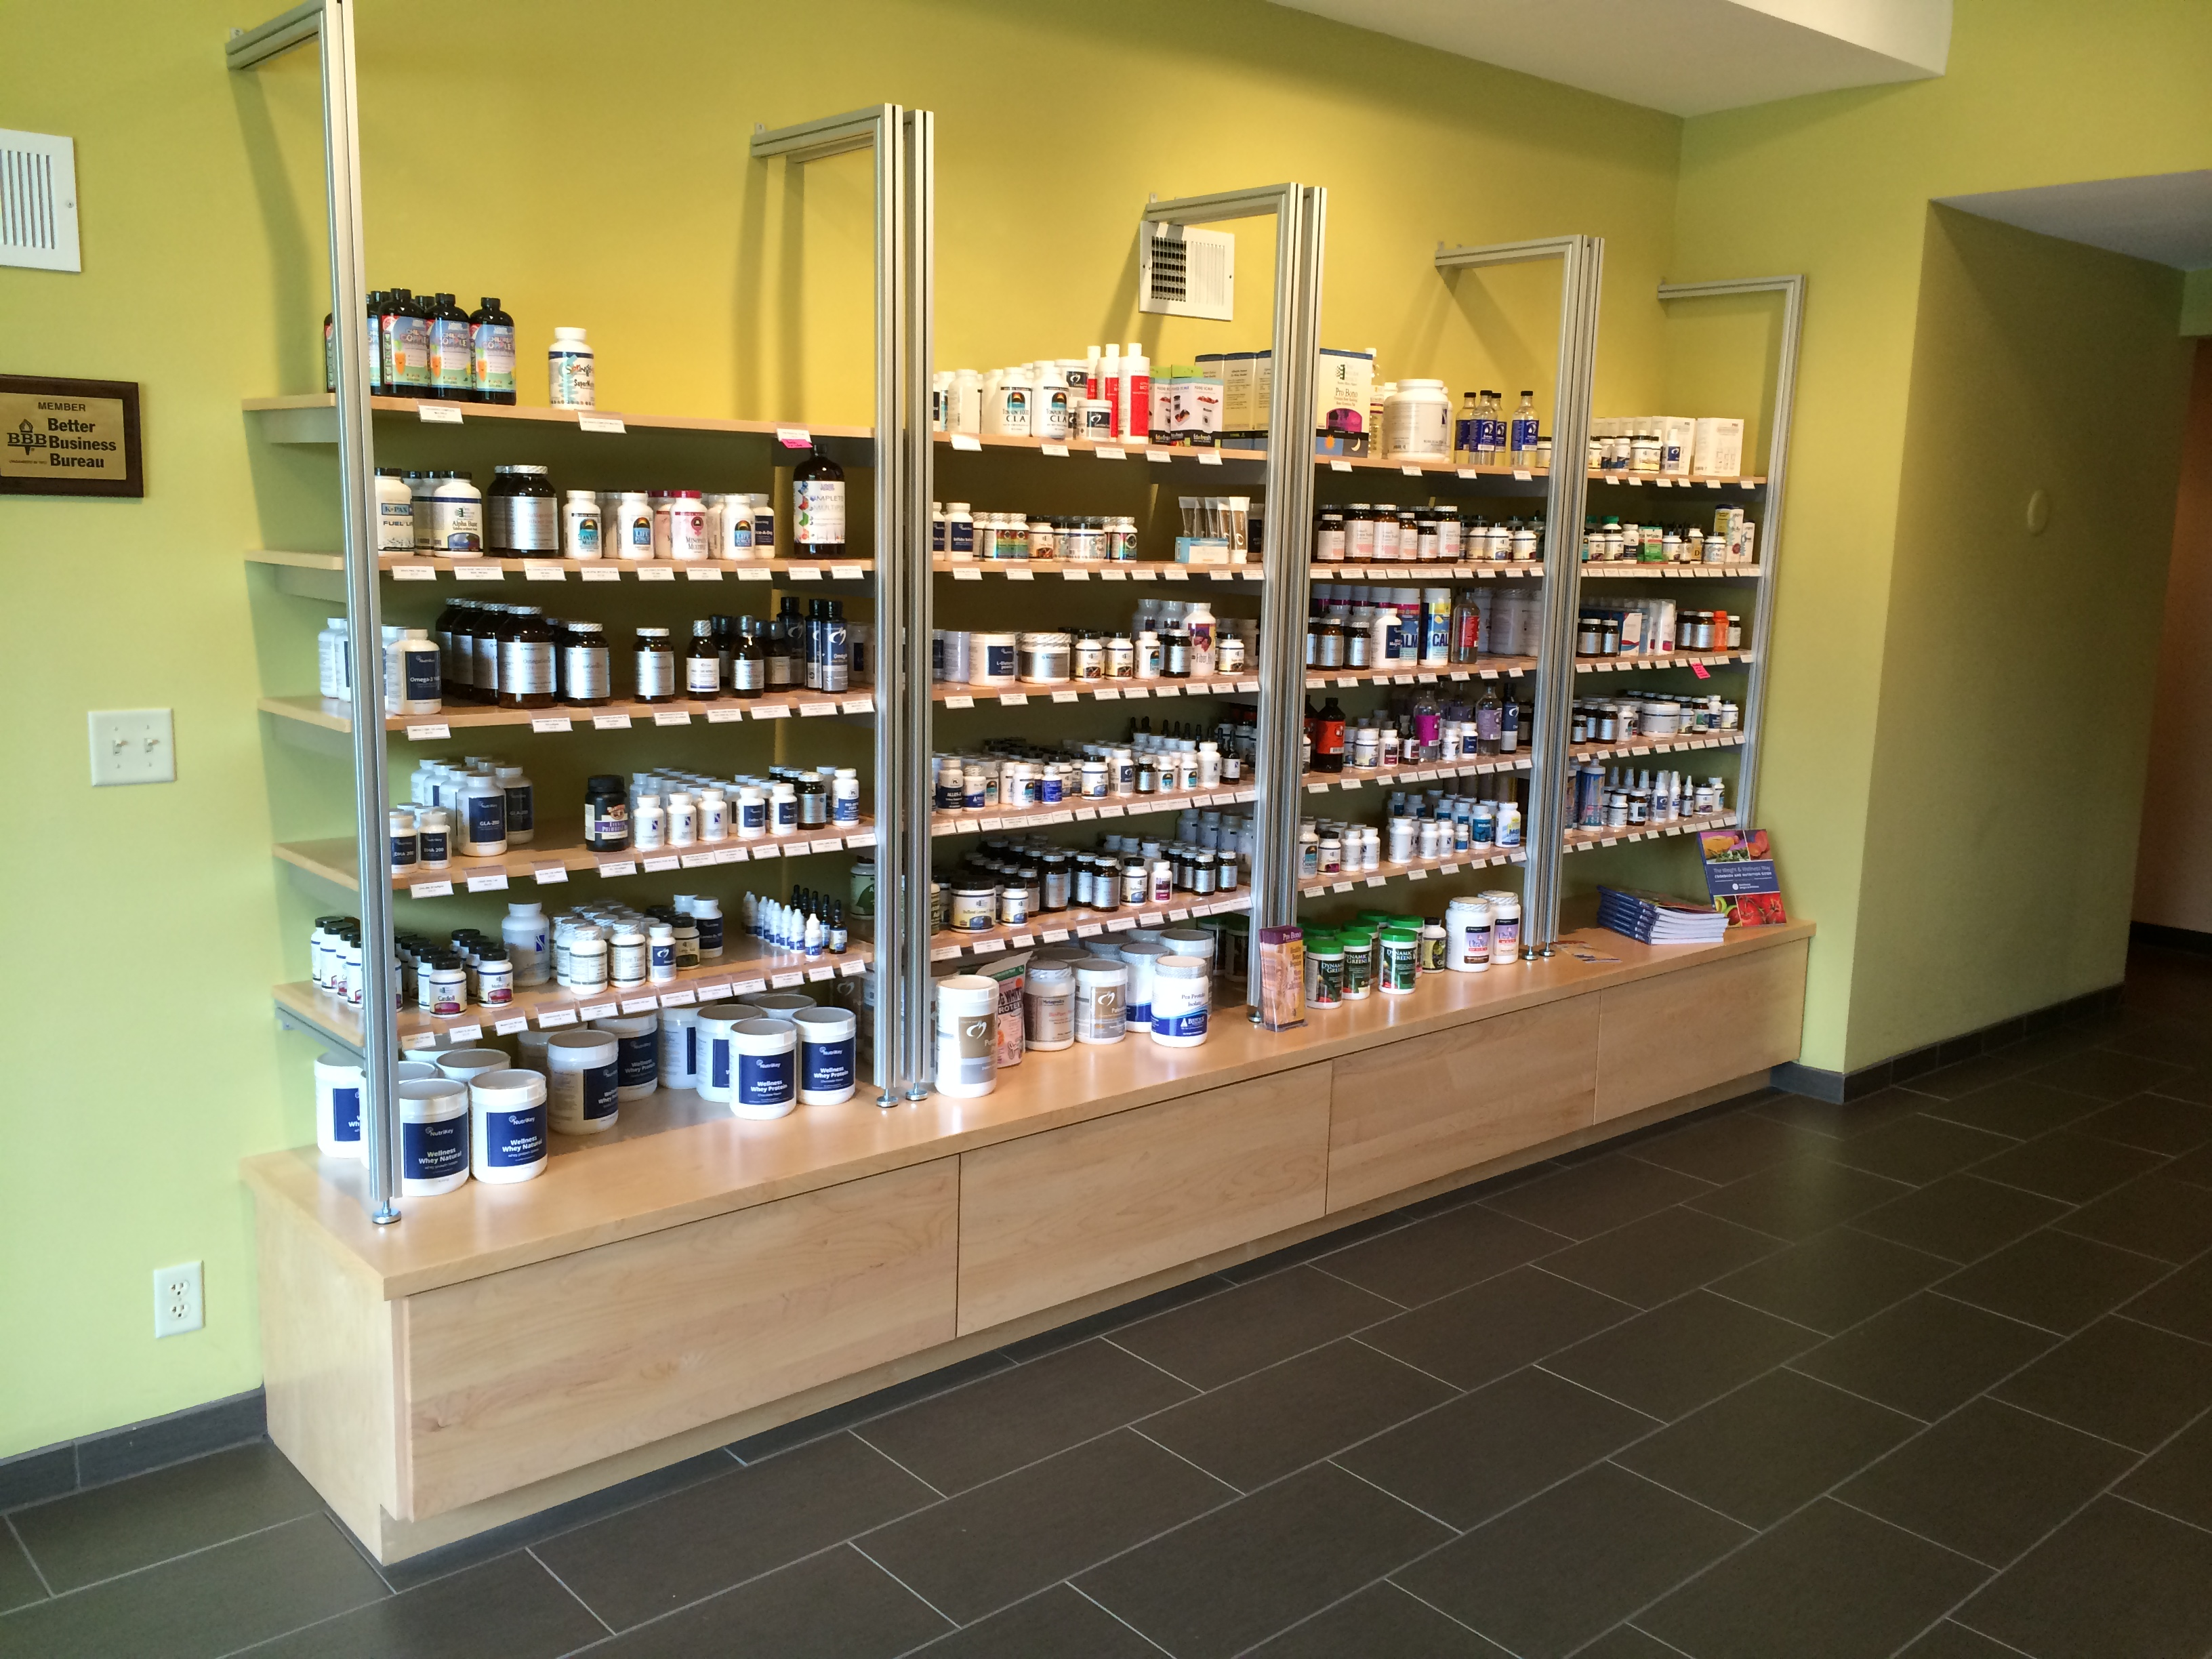 These Custom Built Cabinets Used In A Commercial Office Setting For Them To  Display Their Nutritional Products They Carry. The Deep Drawers Under The  ...